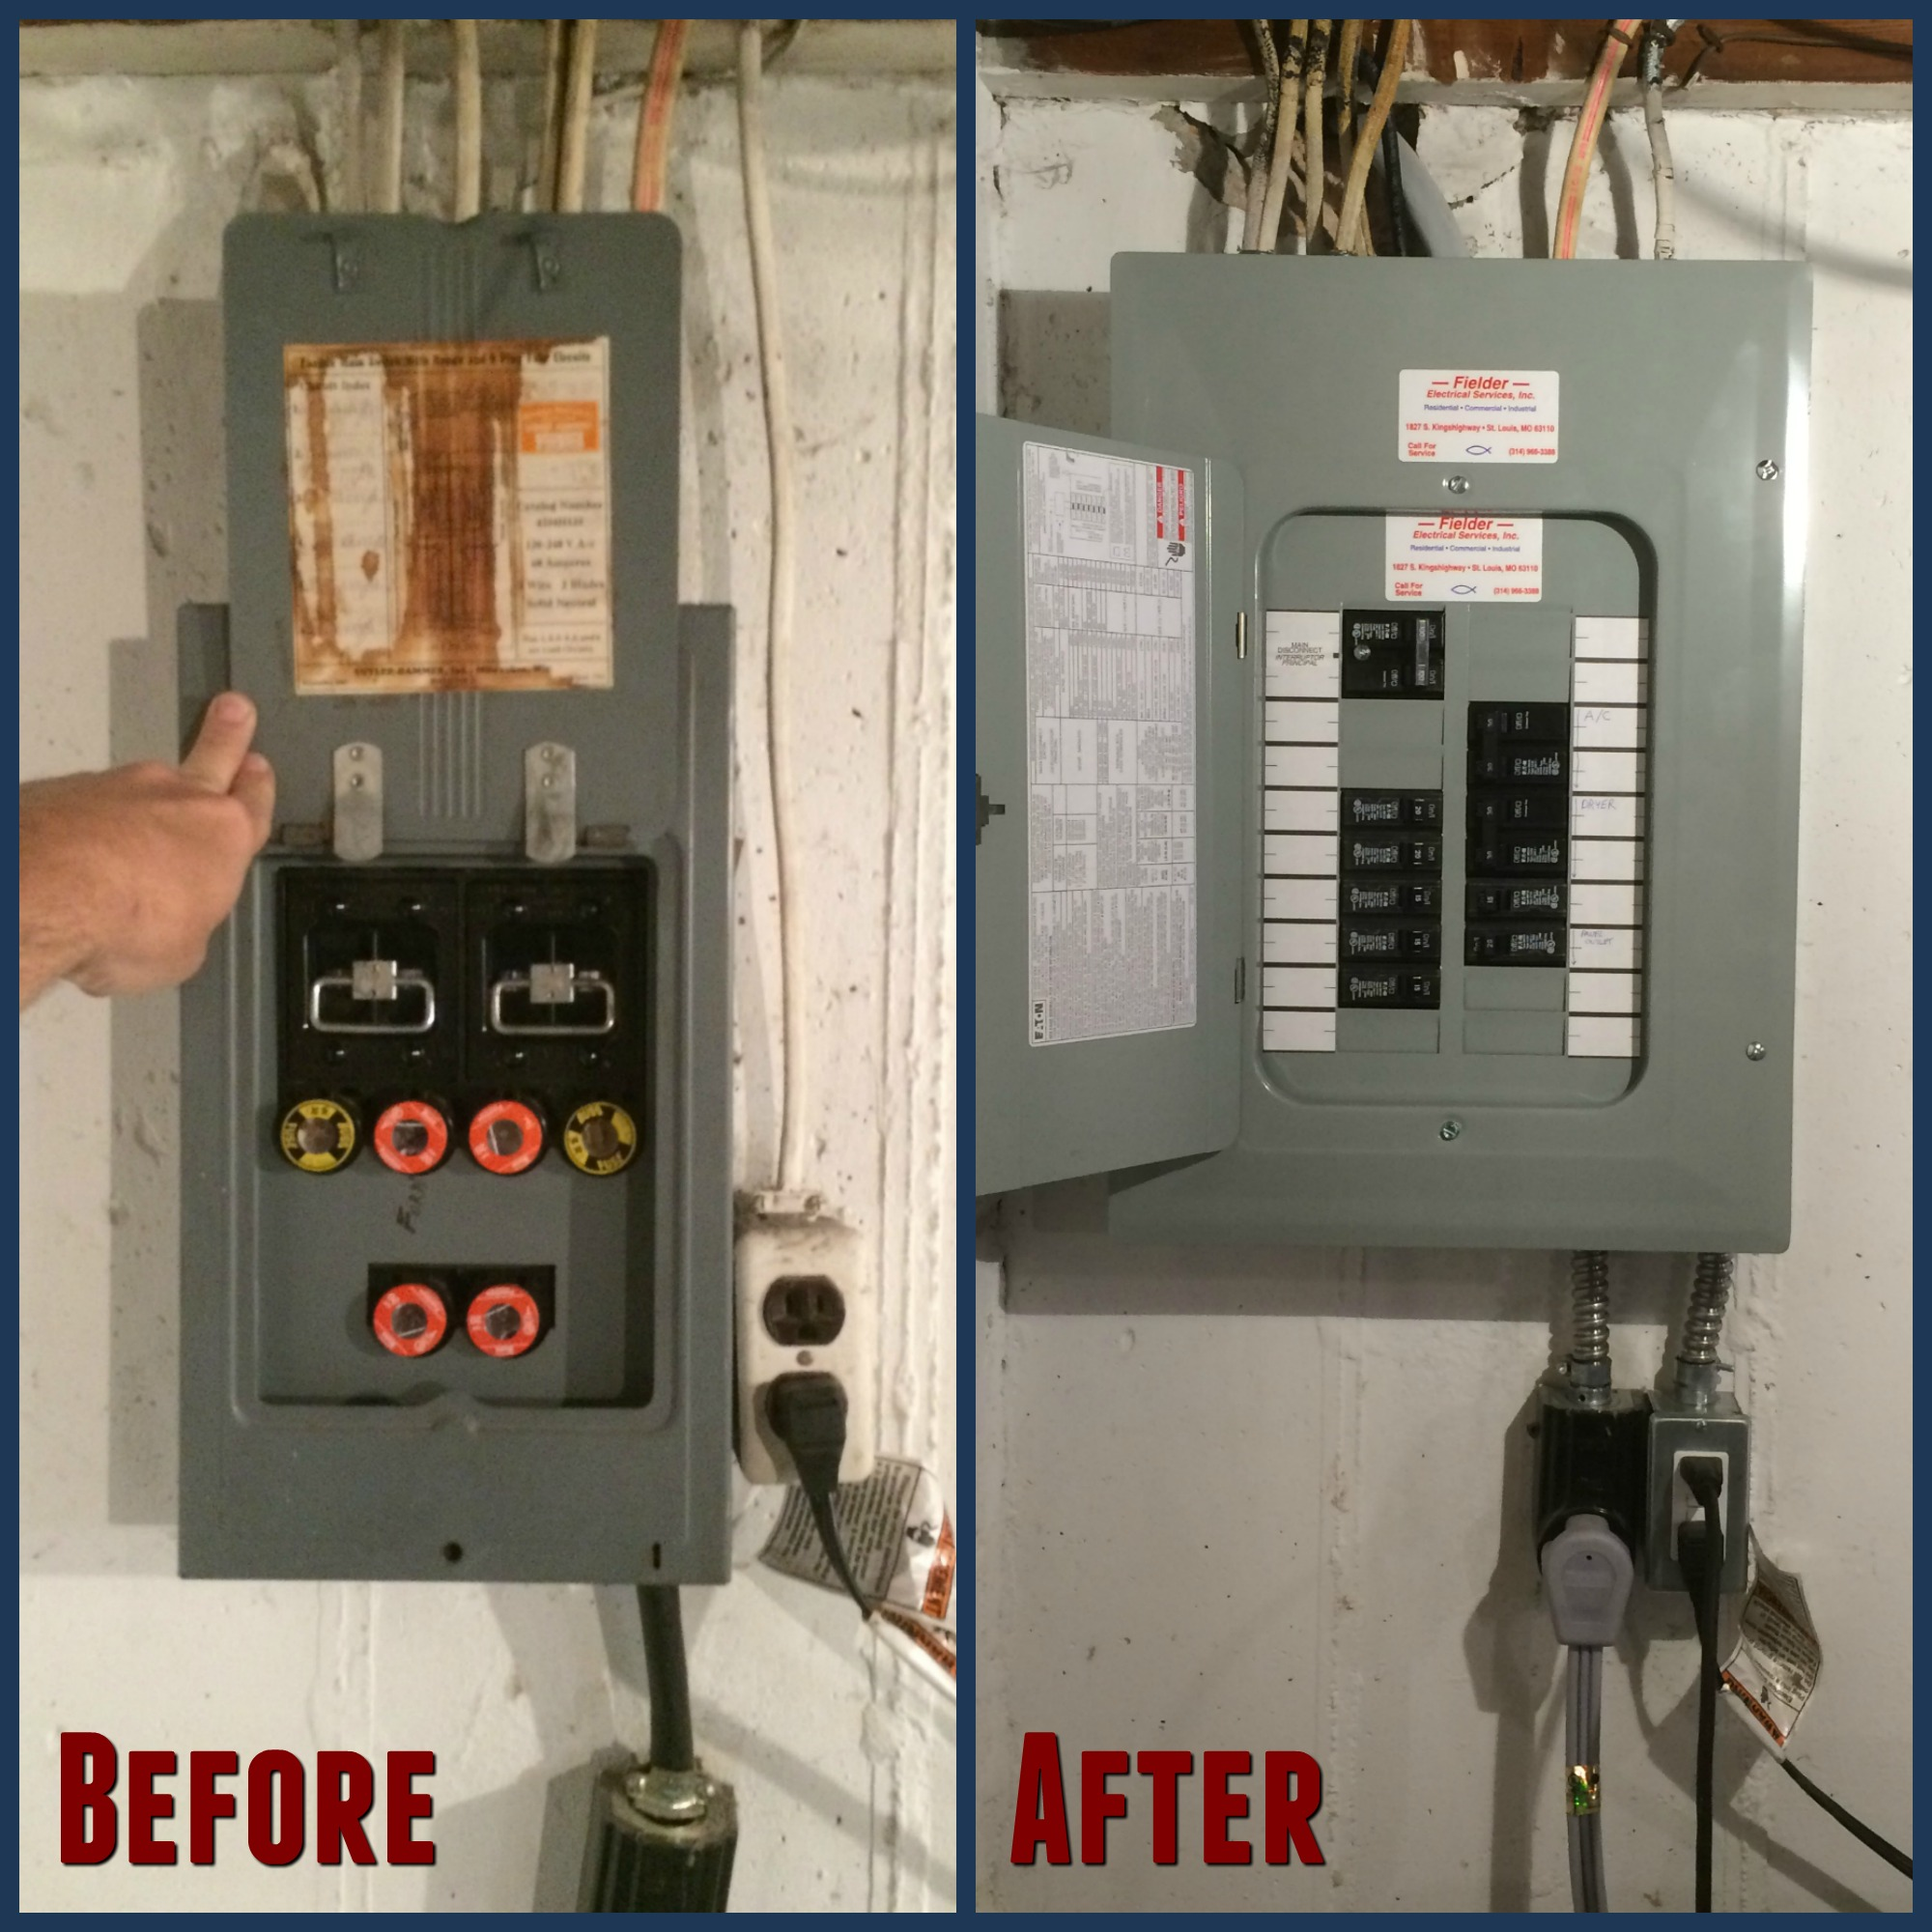 25 amp fuse box wiring diagram Neat Wiring Fuse Panel wiring 20 amp fuse 2 asd capecoral bootsvermietung de \\u2022wiring 20 amp fuse wiring diagram